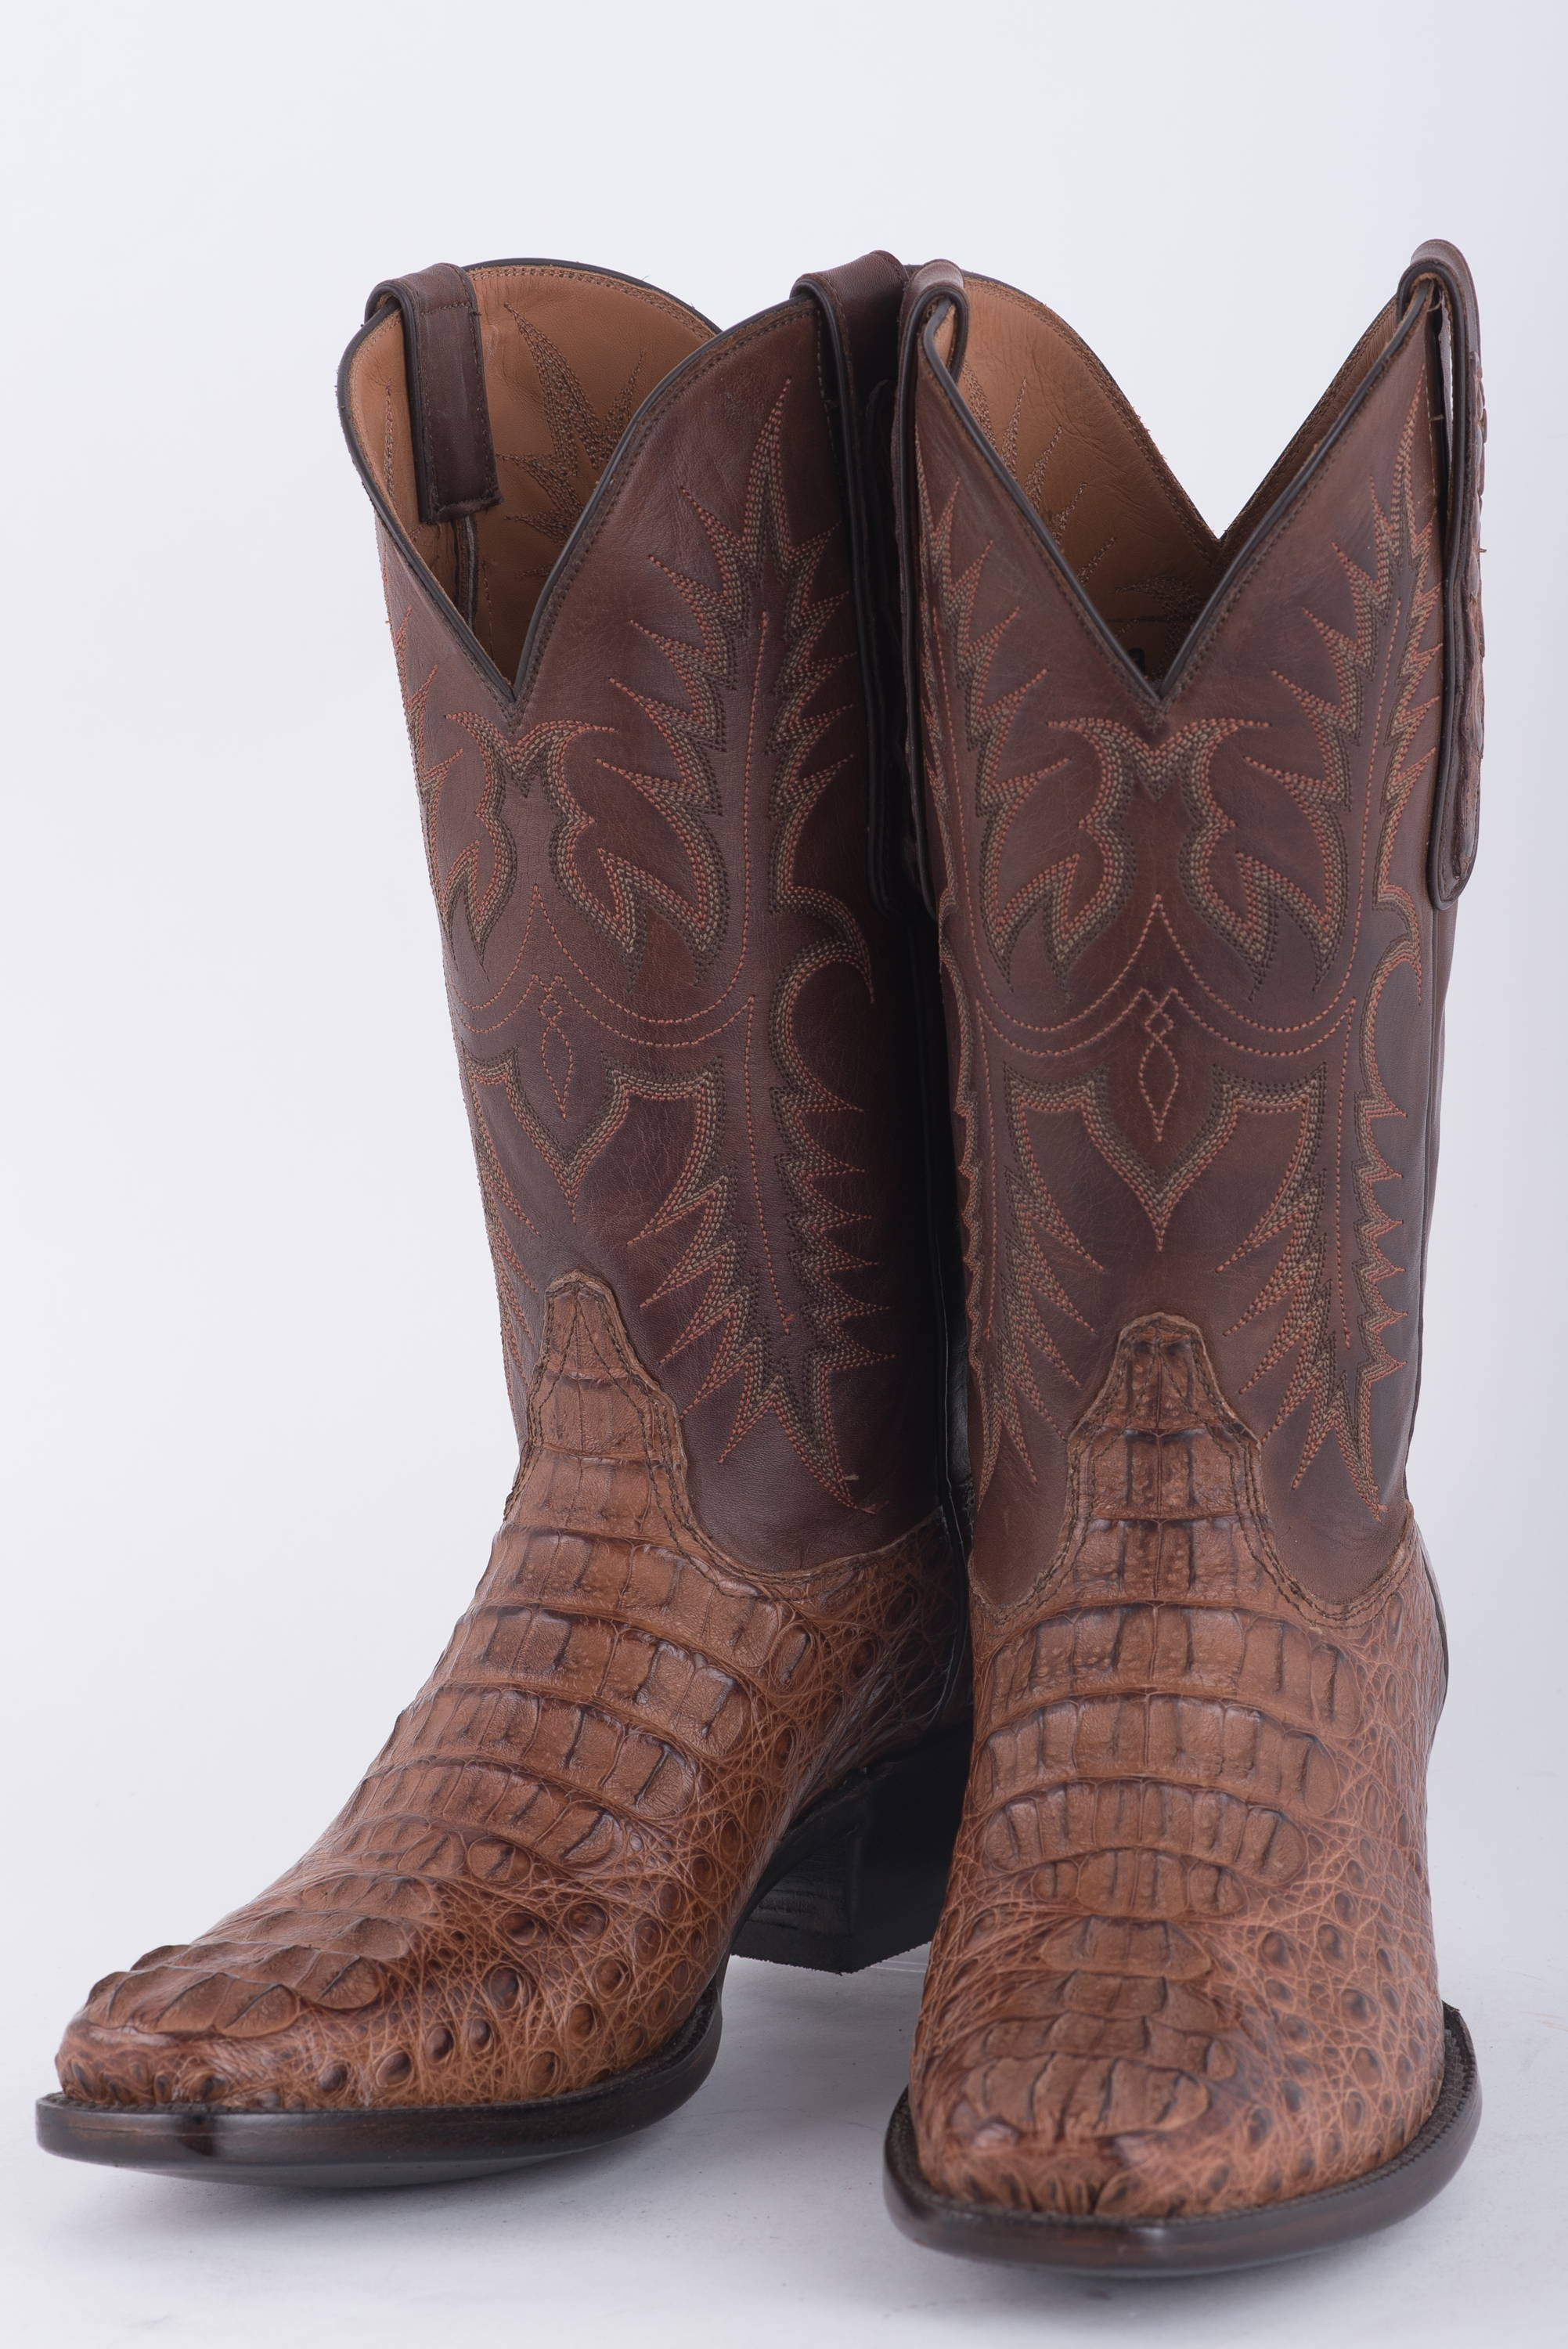 Handmade leather cowboy boots at the Houston Rodeo